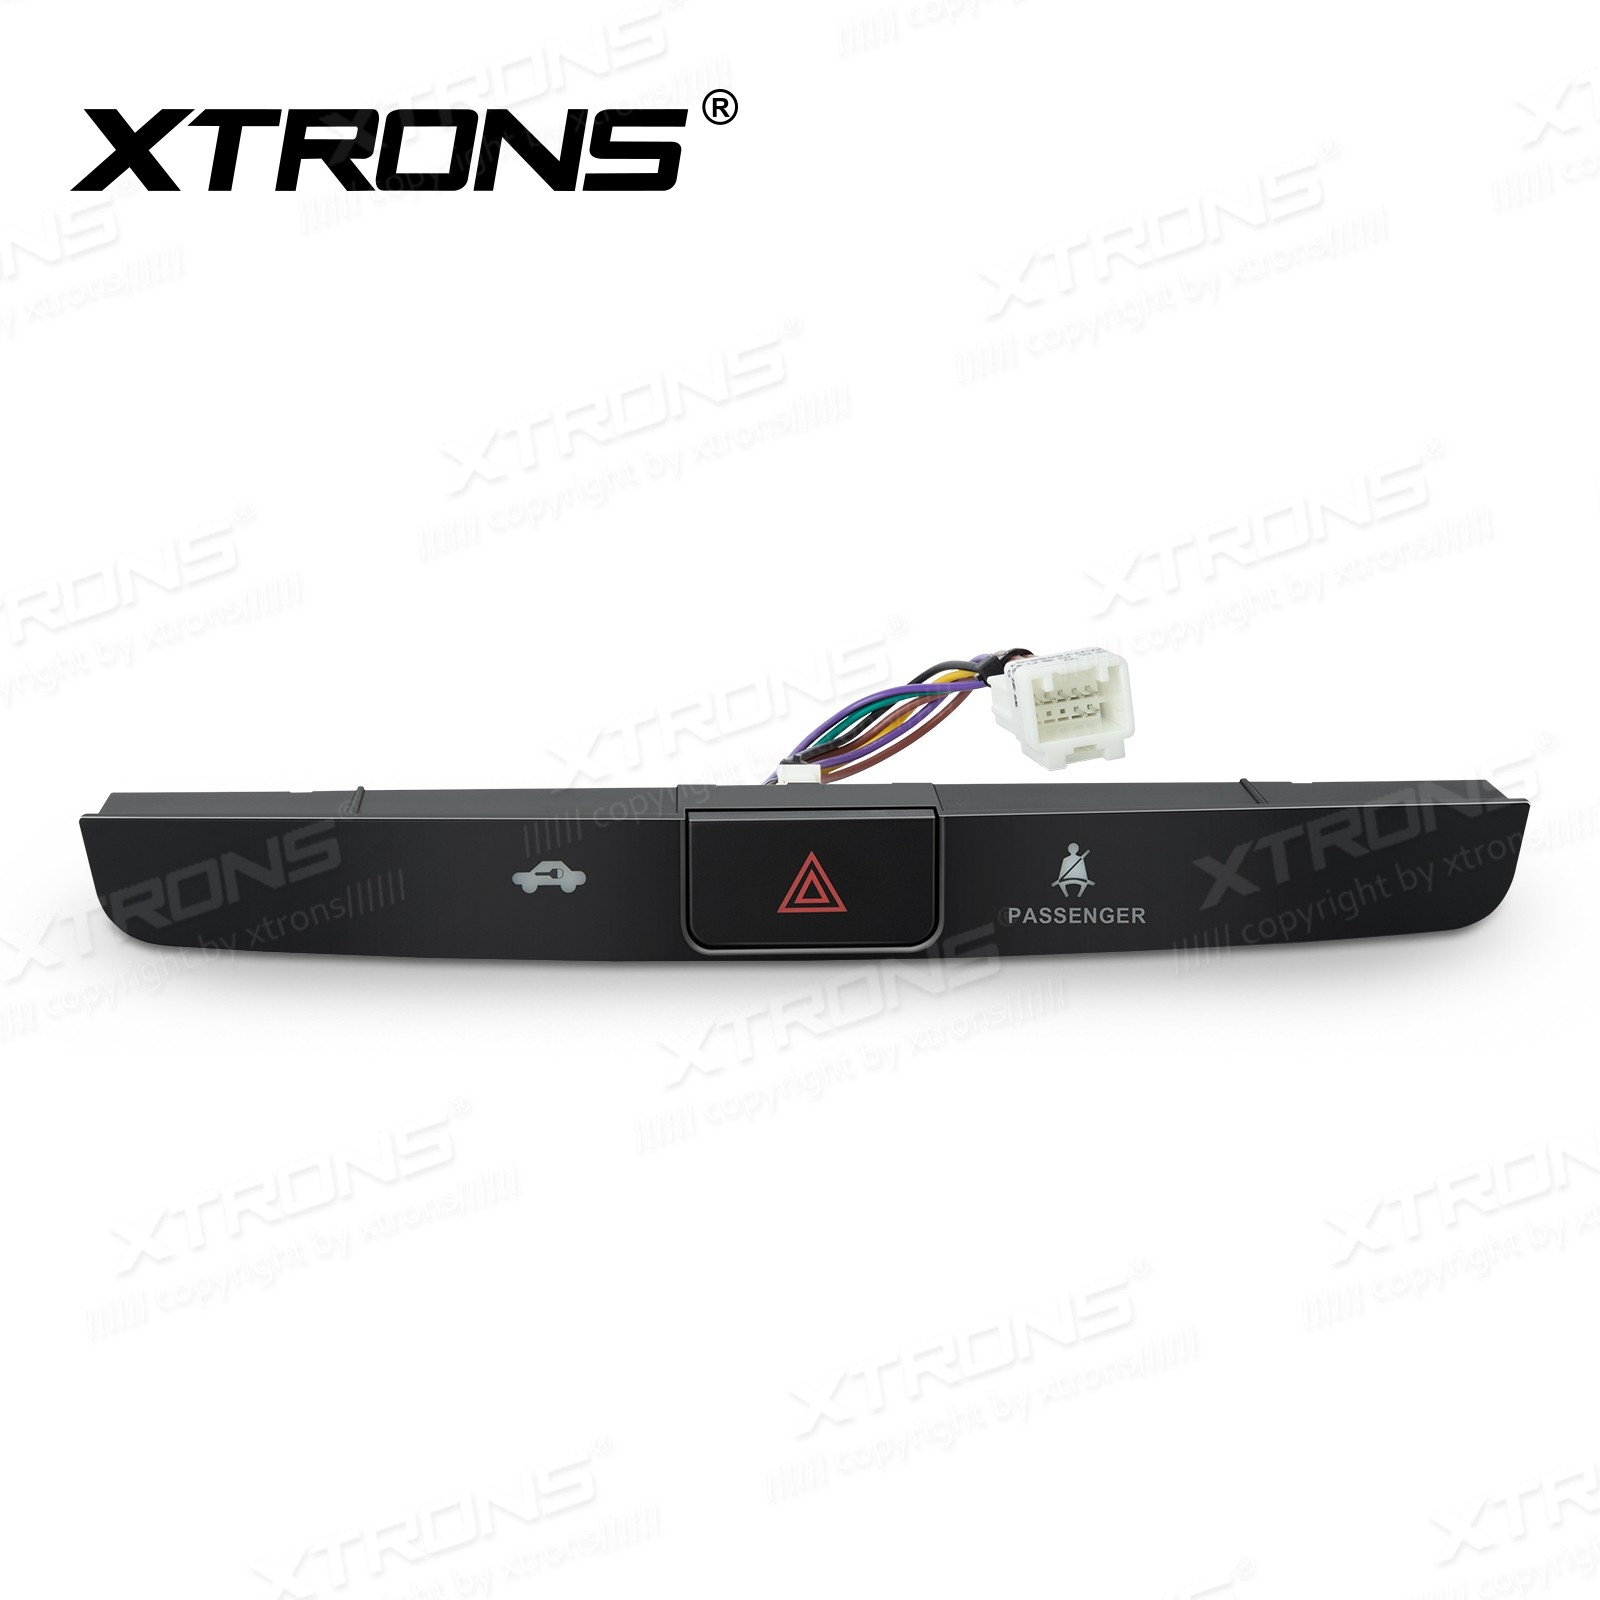 Emergency flashers panel for XTRONS TOYOTA Highlander Unit PR18HDTL